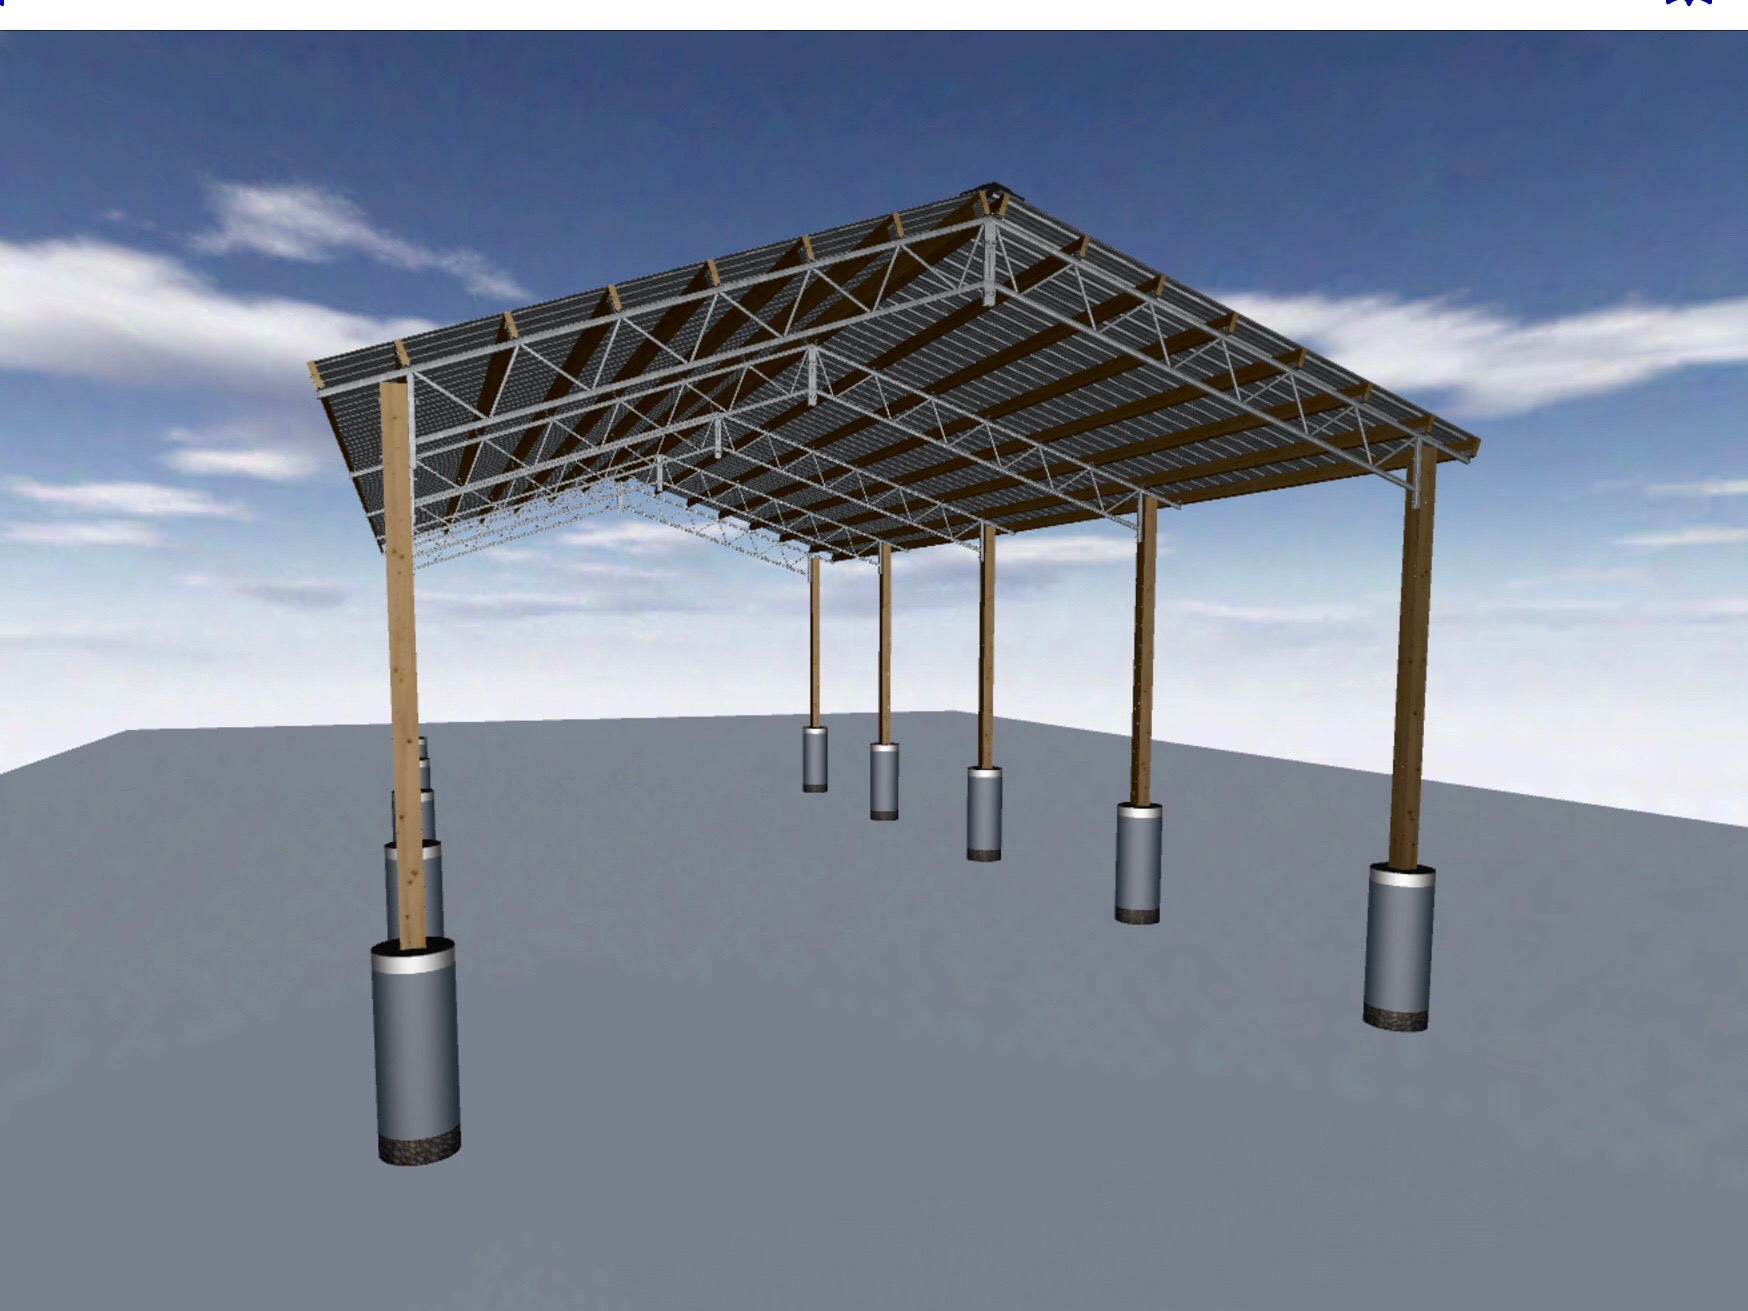 Pole barn design random designs inc for Pole building design ideas